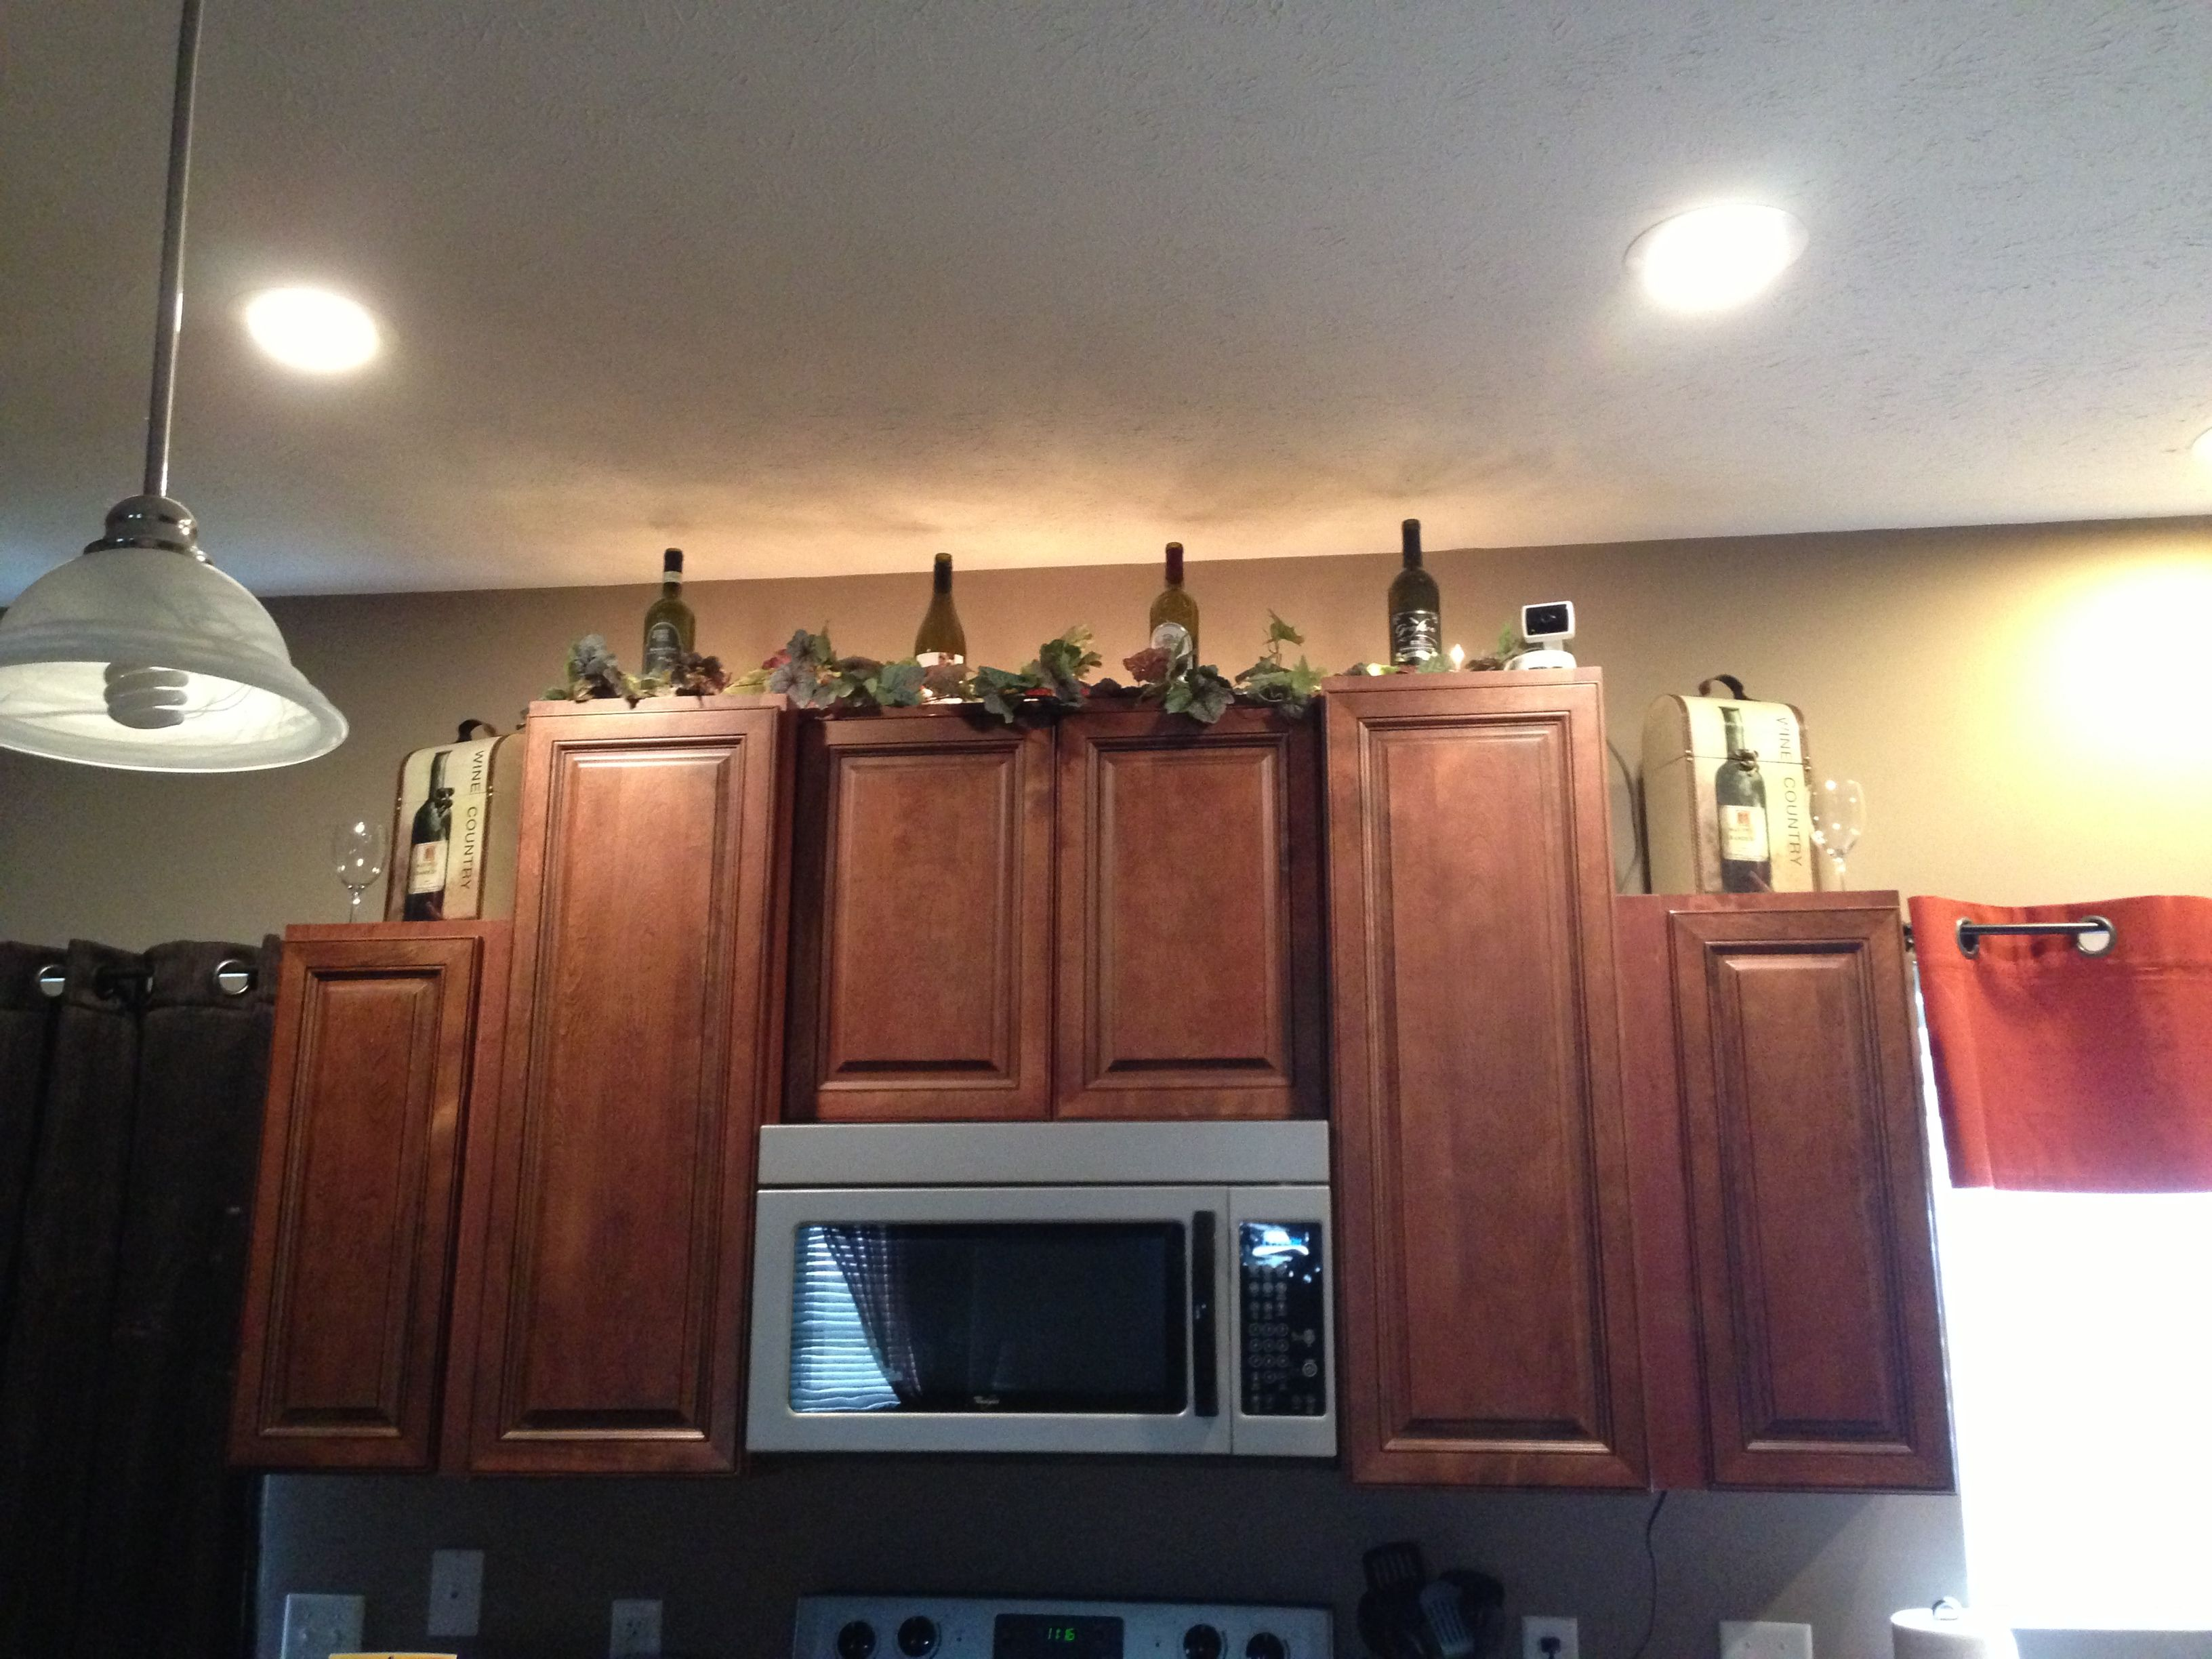 attractive Wine Decorations For Kitchen #4: Decorating Your Kitchen With A Wine Bottle Theme | Classica Decor Blog |  For the Home | Pinterest | Kitchen colors, Wine theme kitu2026